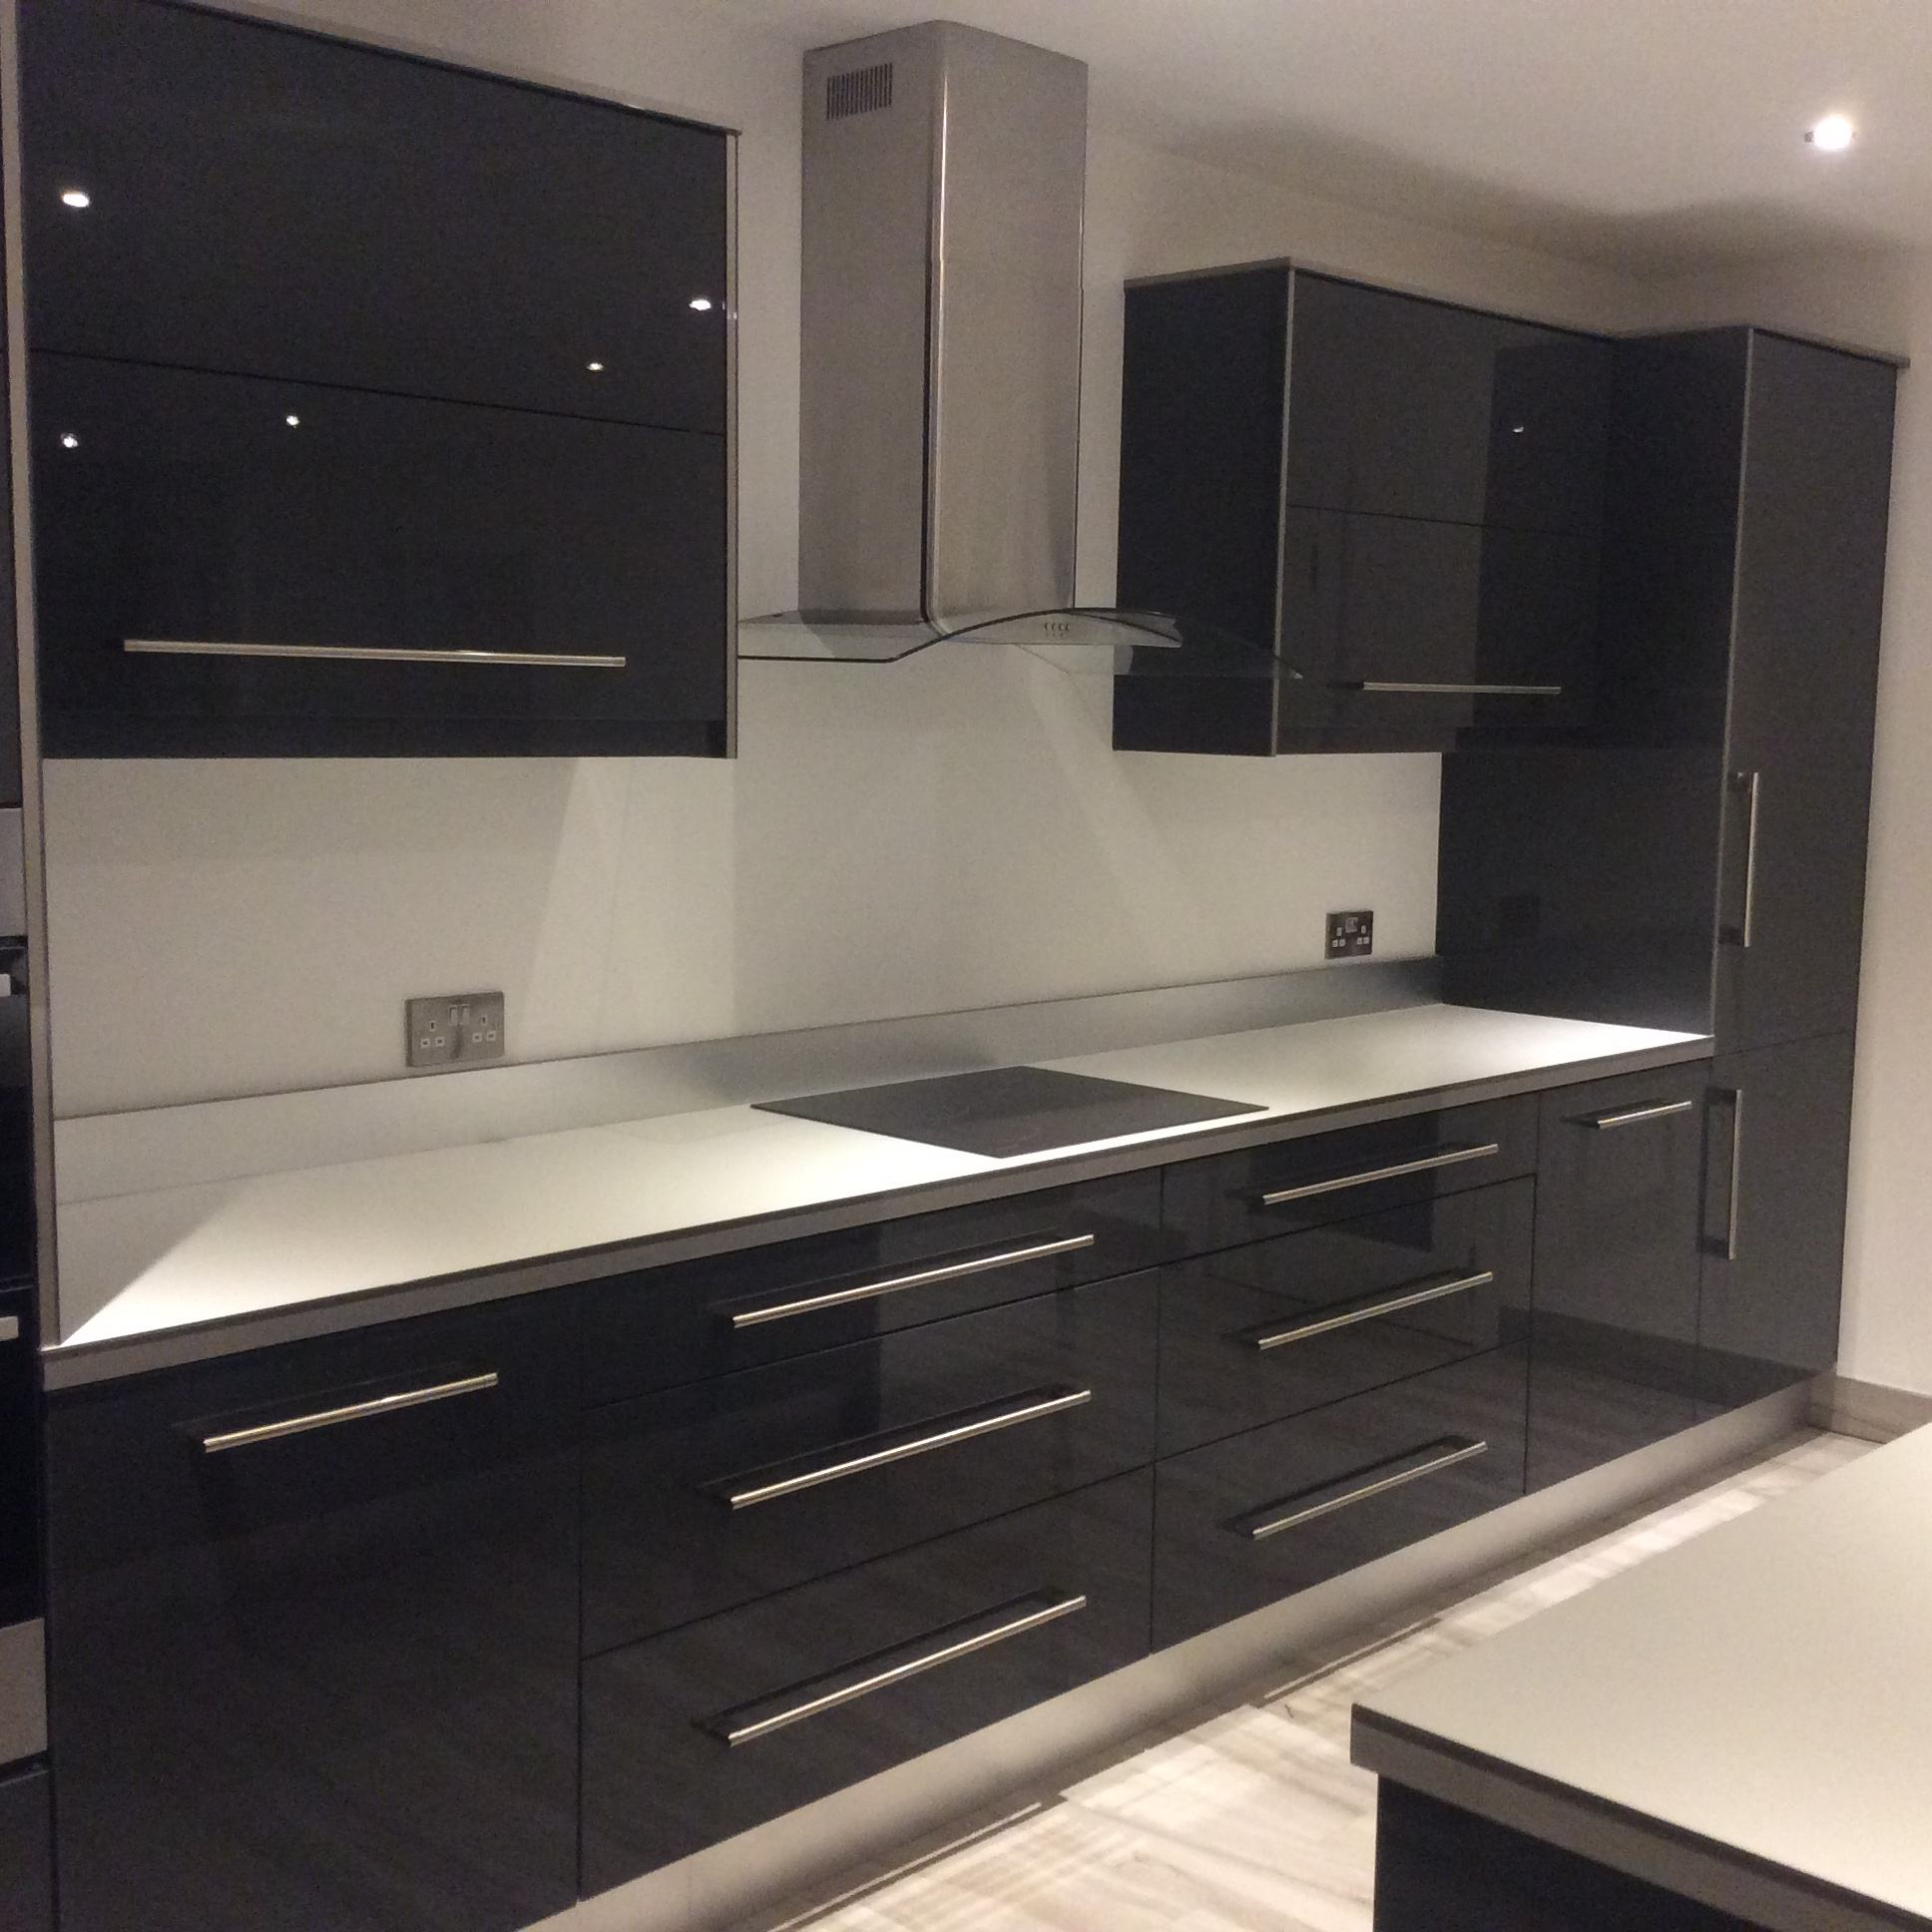 Gloss Black Kitchen Cabinets: Karl Cullen Fitted Furniture